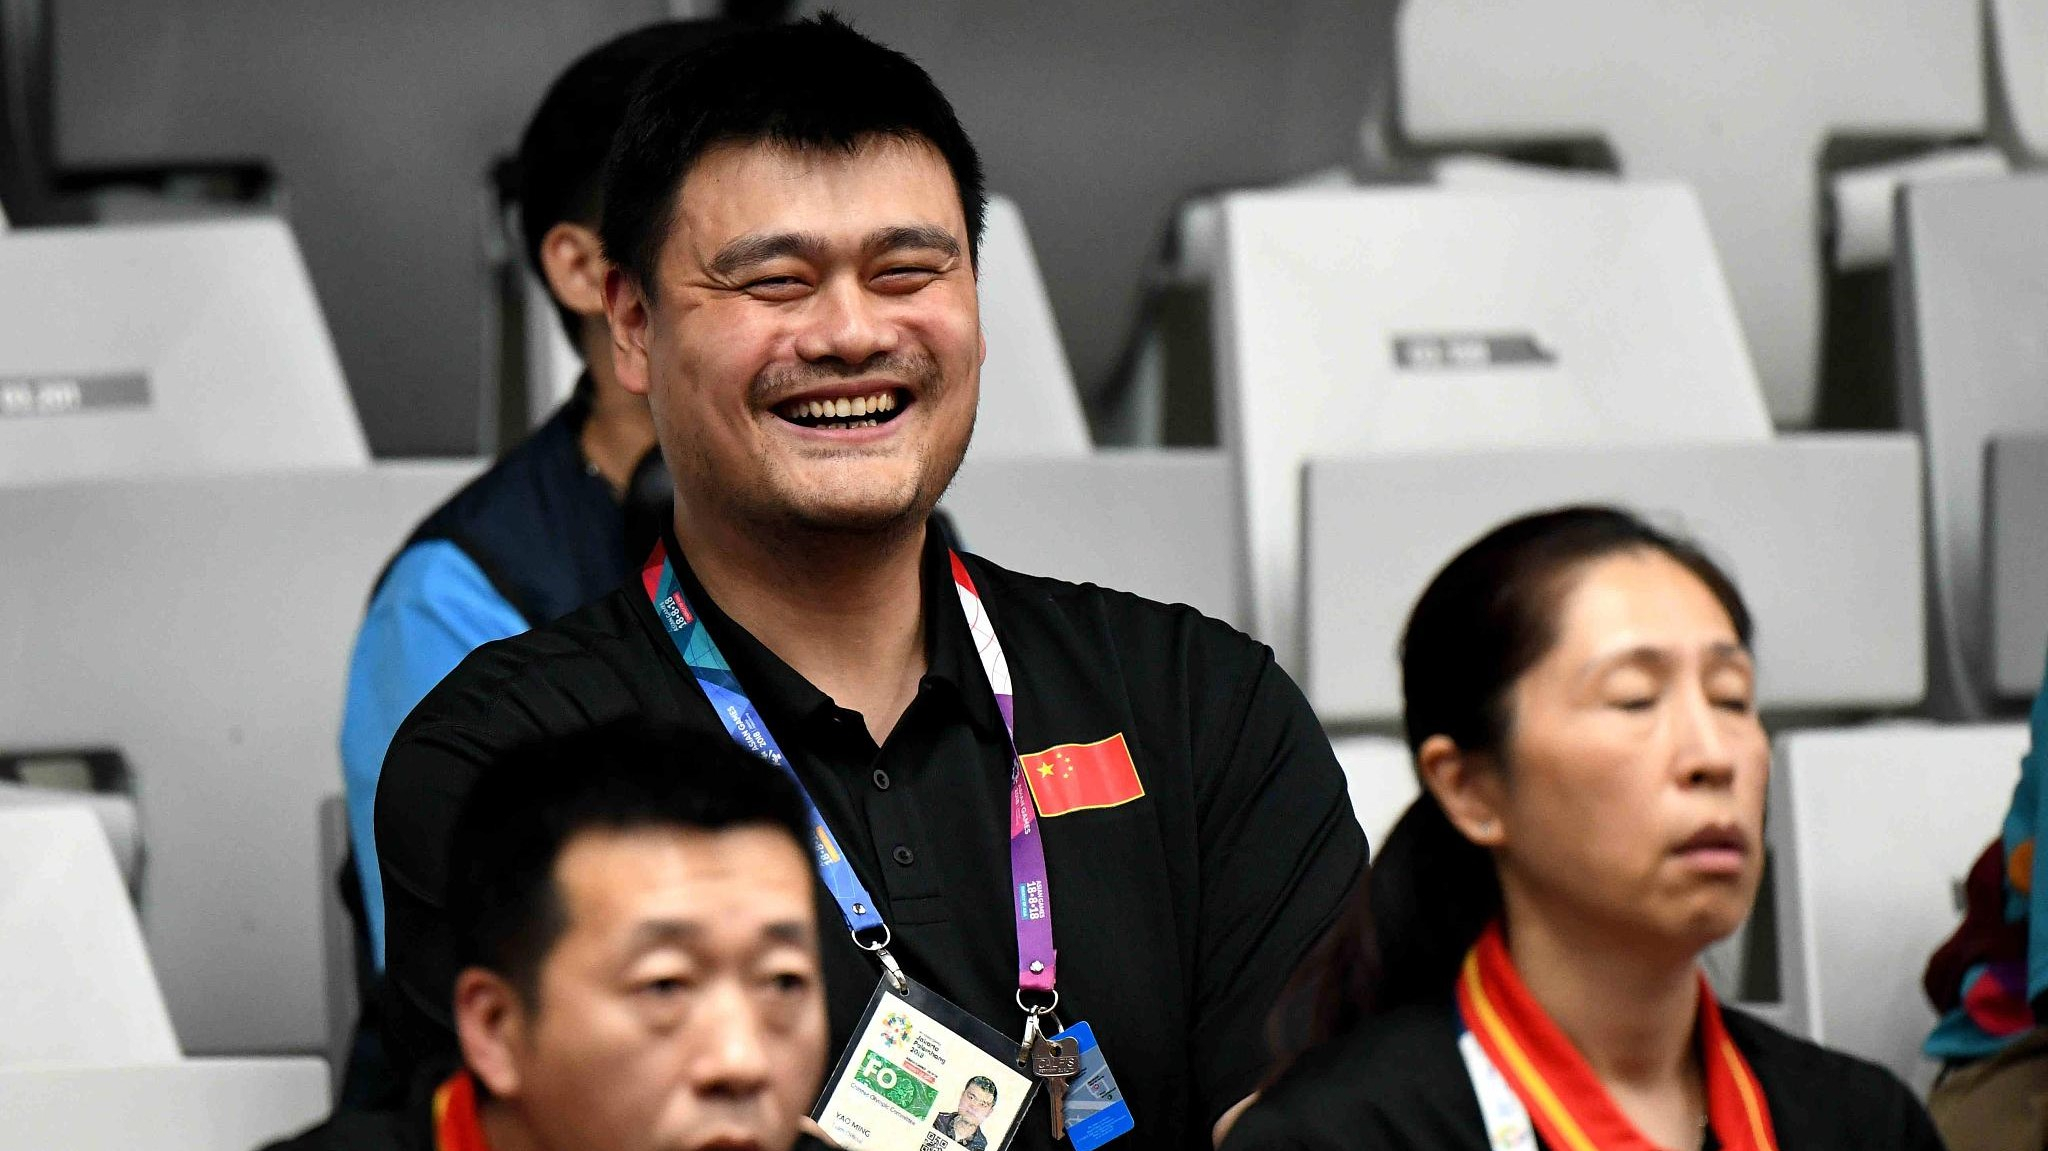 yao ming s name s in the air for china s basketball success at asian